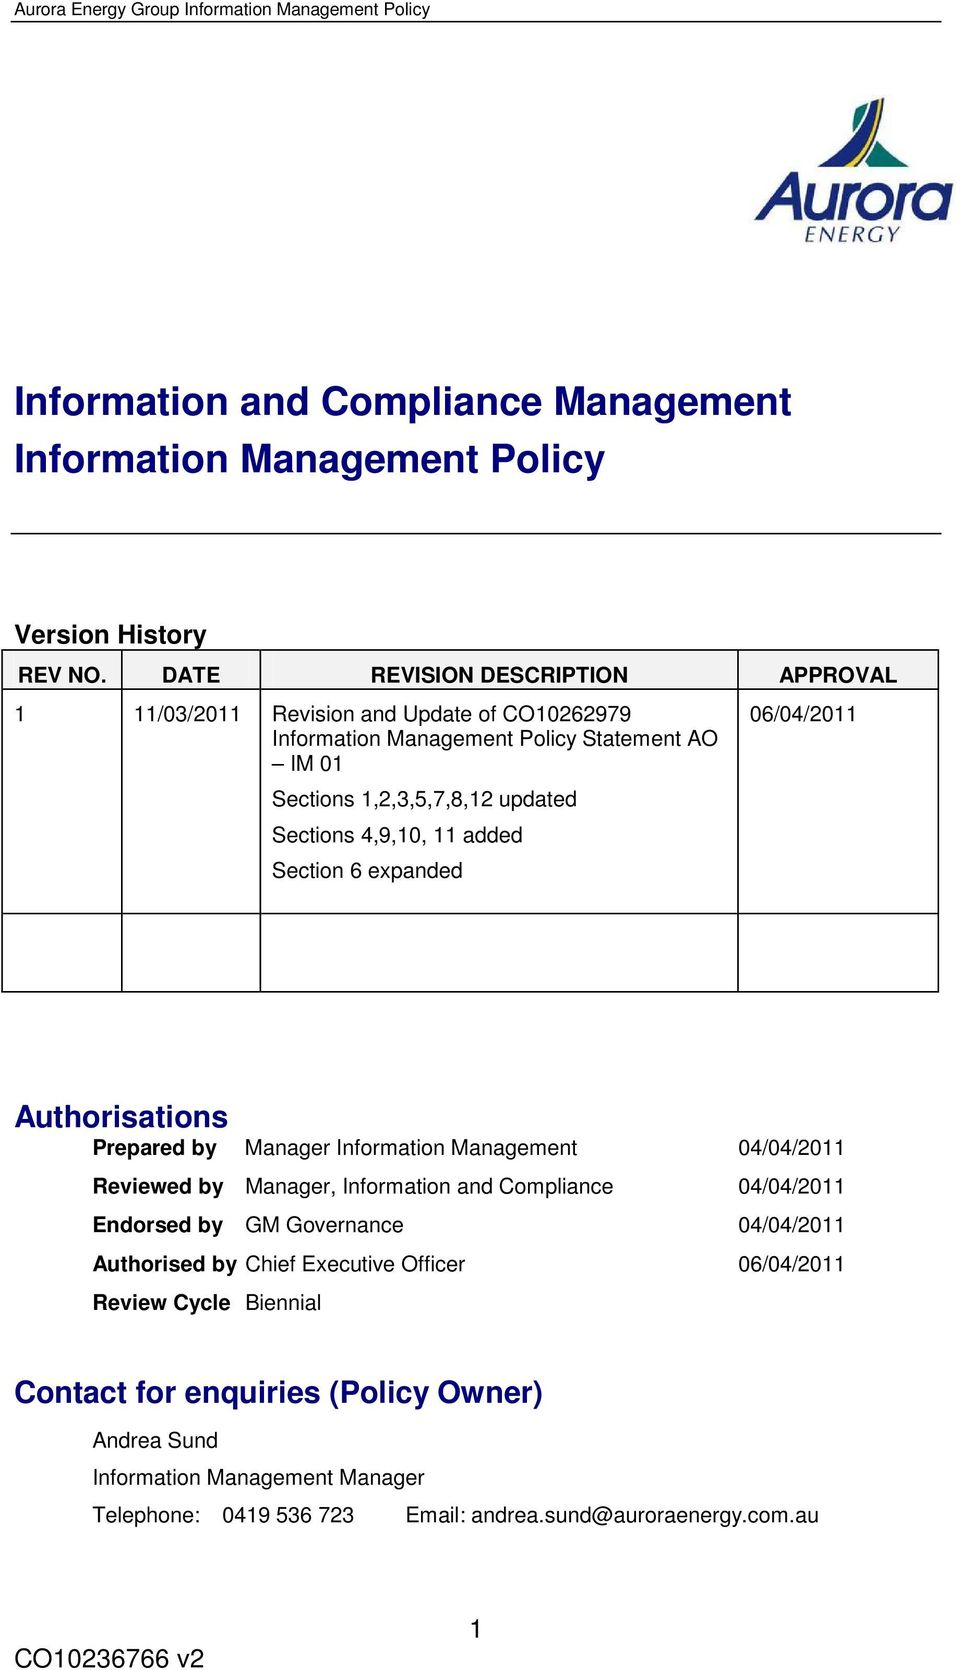 added Section 6 expanded 06/04/2011 Authorisations Prepared by Manager Information Management 04/04/2011 Reviewed by Manager, Information and Compliance 04/04/2011 Endorsed by GM